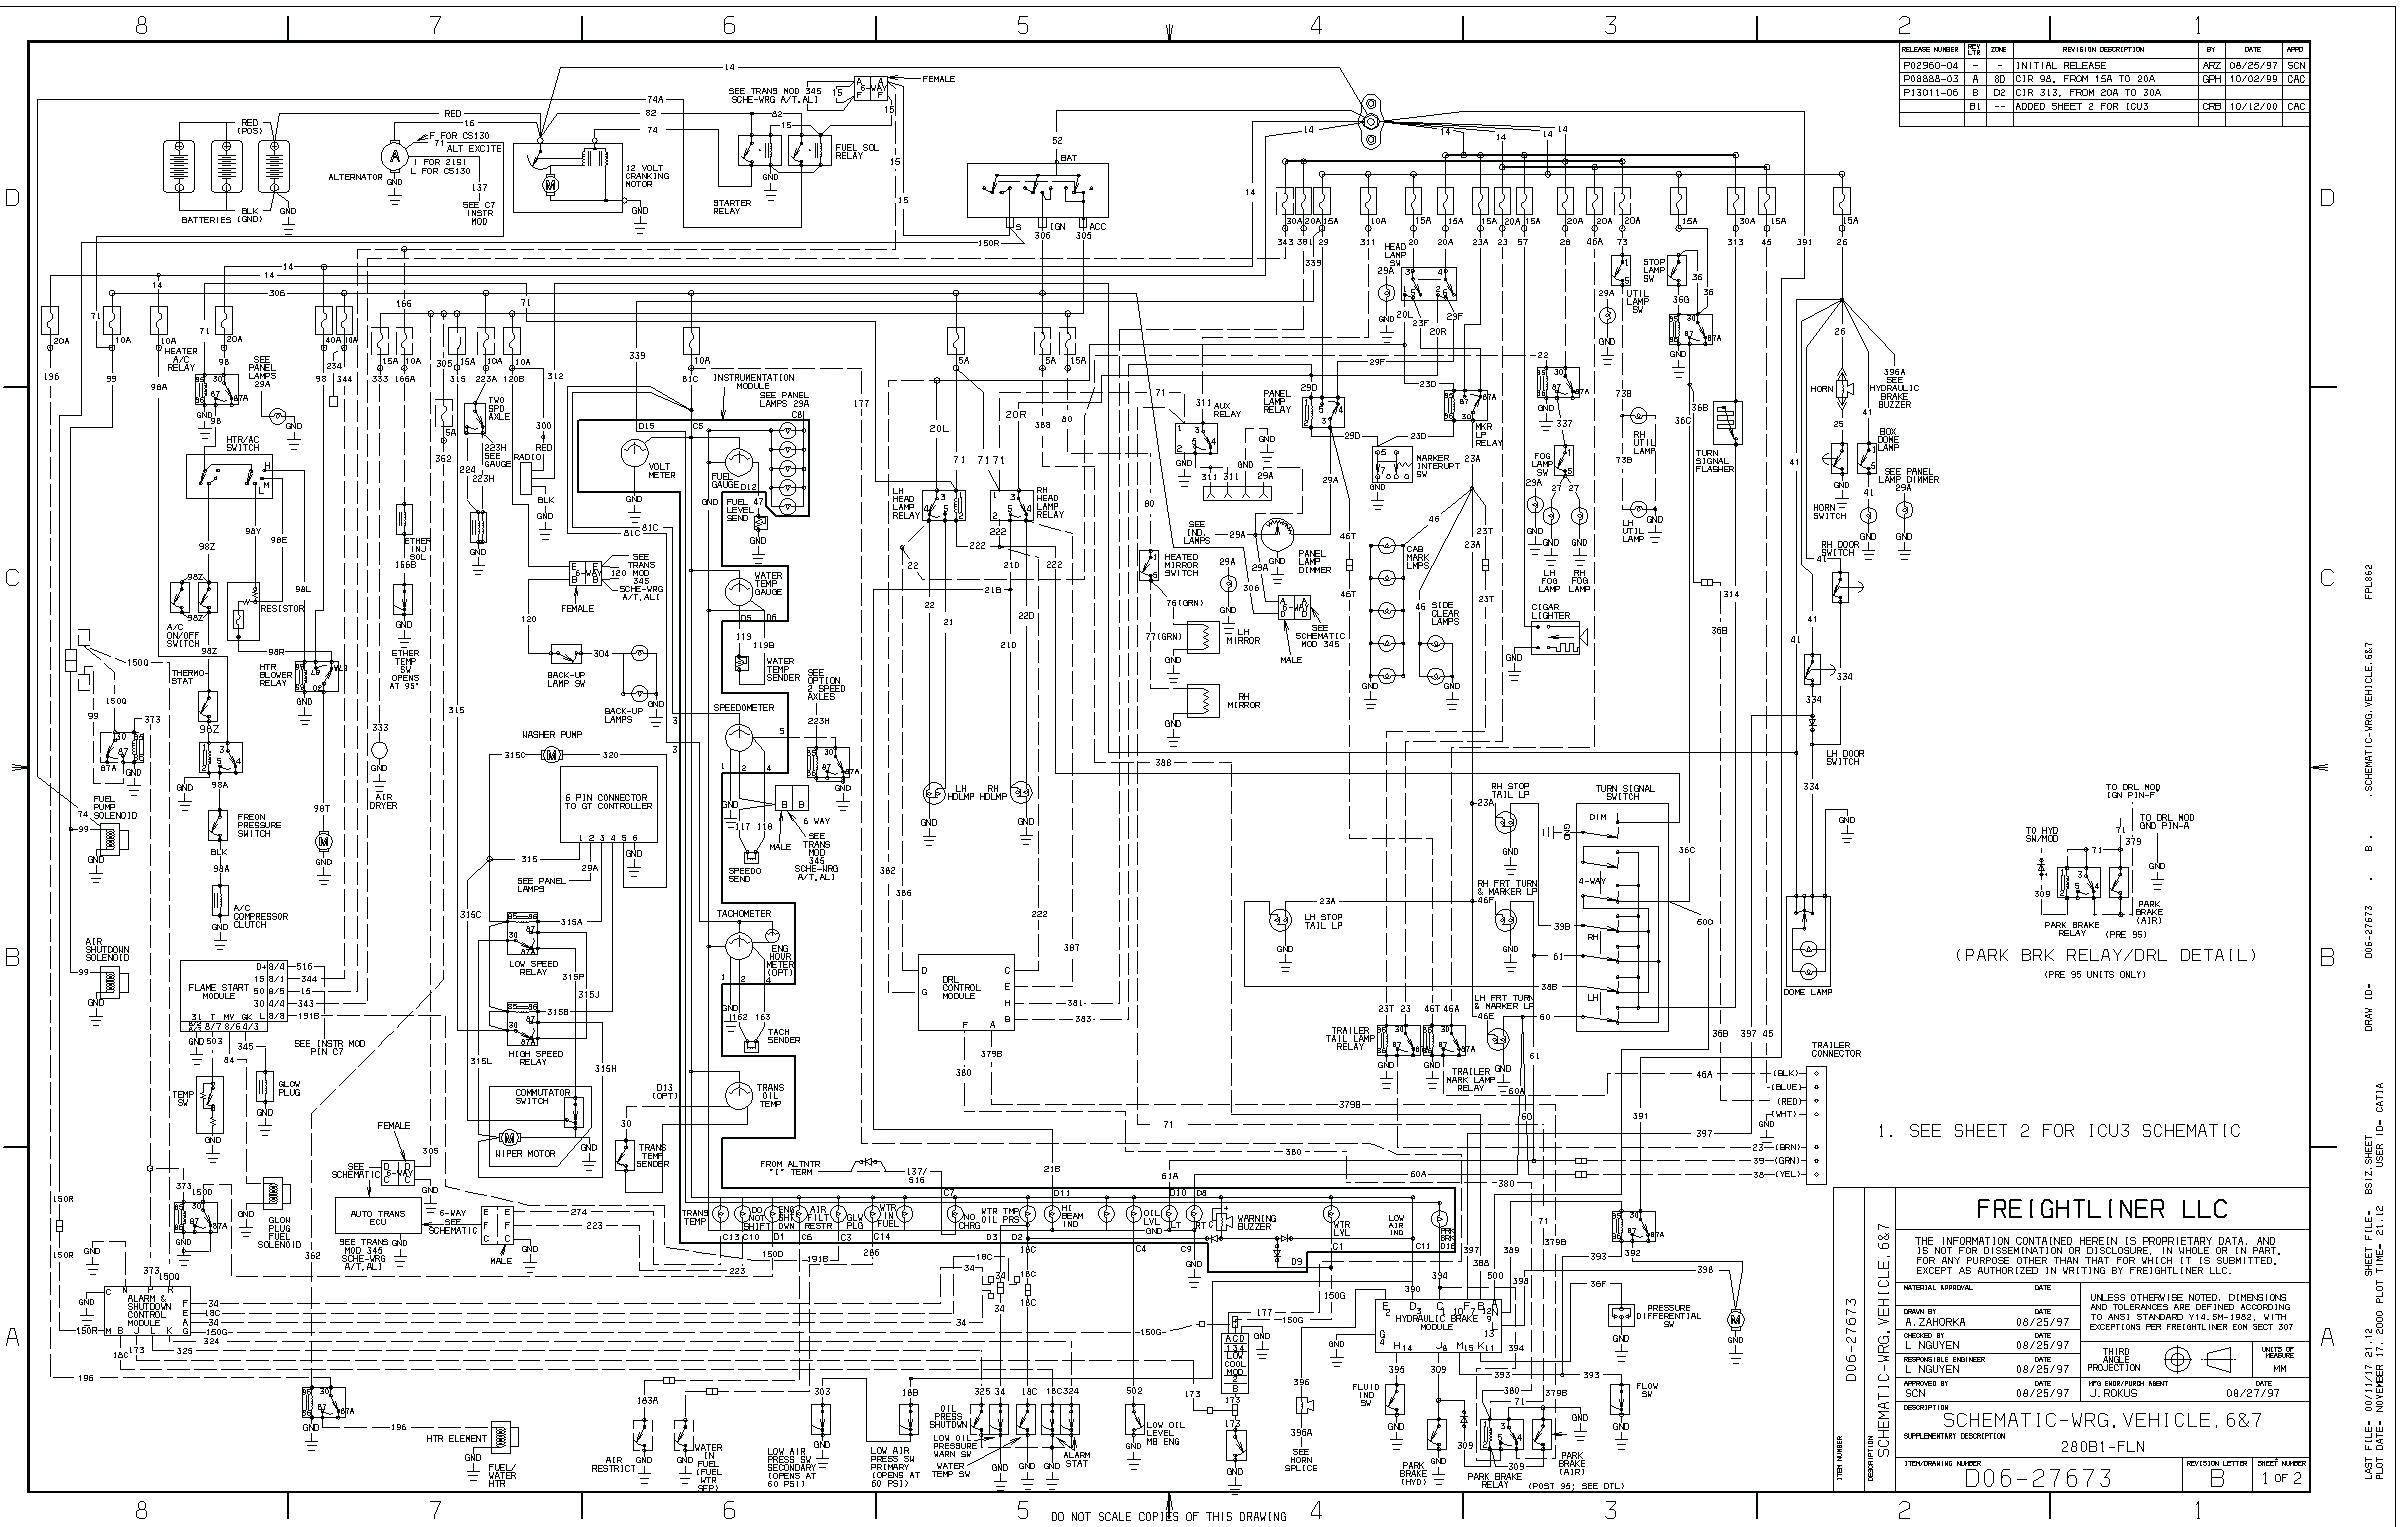 2002 toyota Camry Engine Diagram 1996 toyota Camry Engine Wiring Diagram Great Chassis In Alternator Of 2002 toyota Camry Engine Diagram